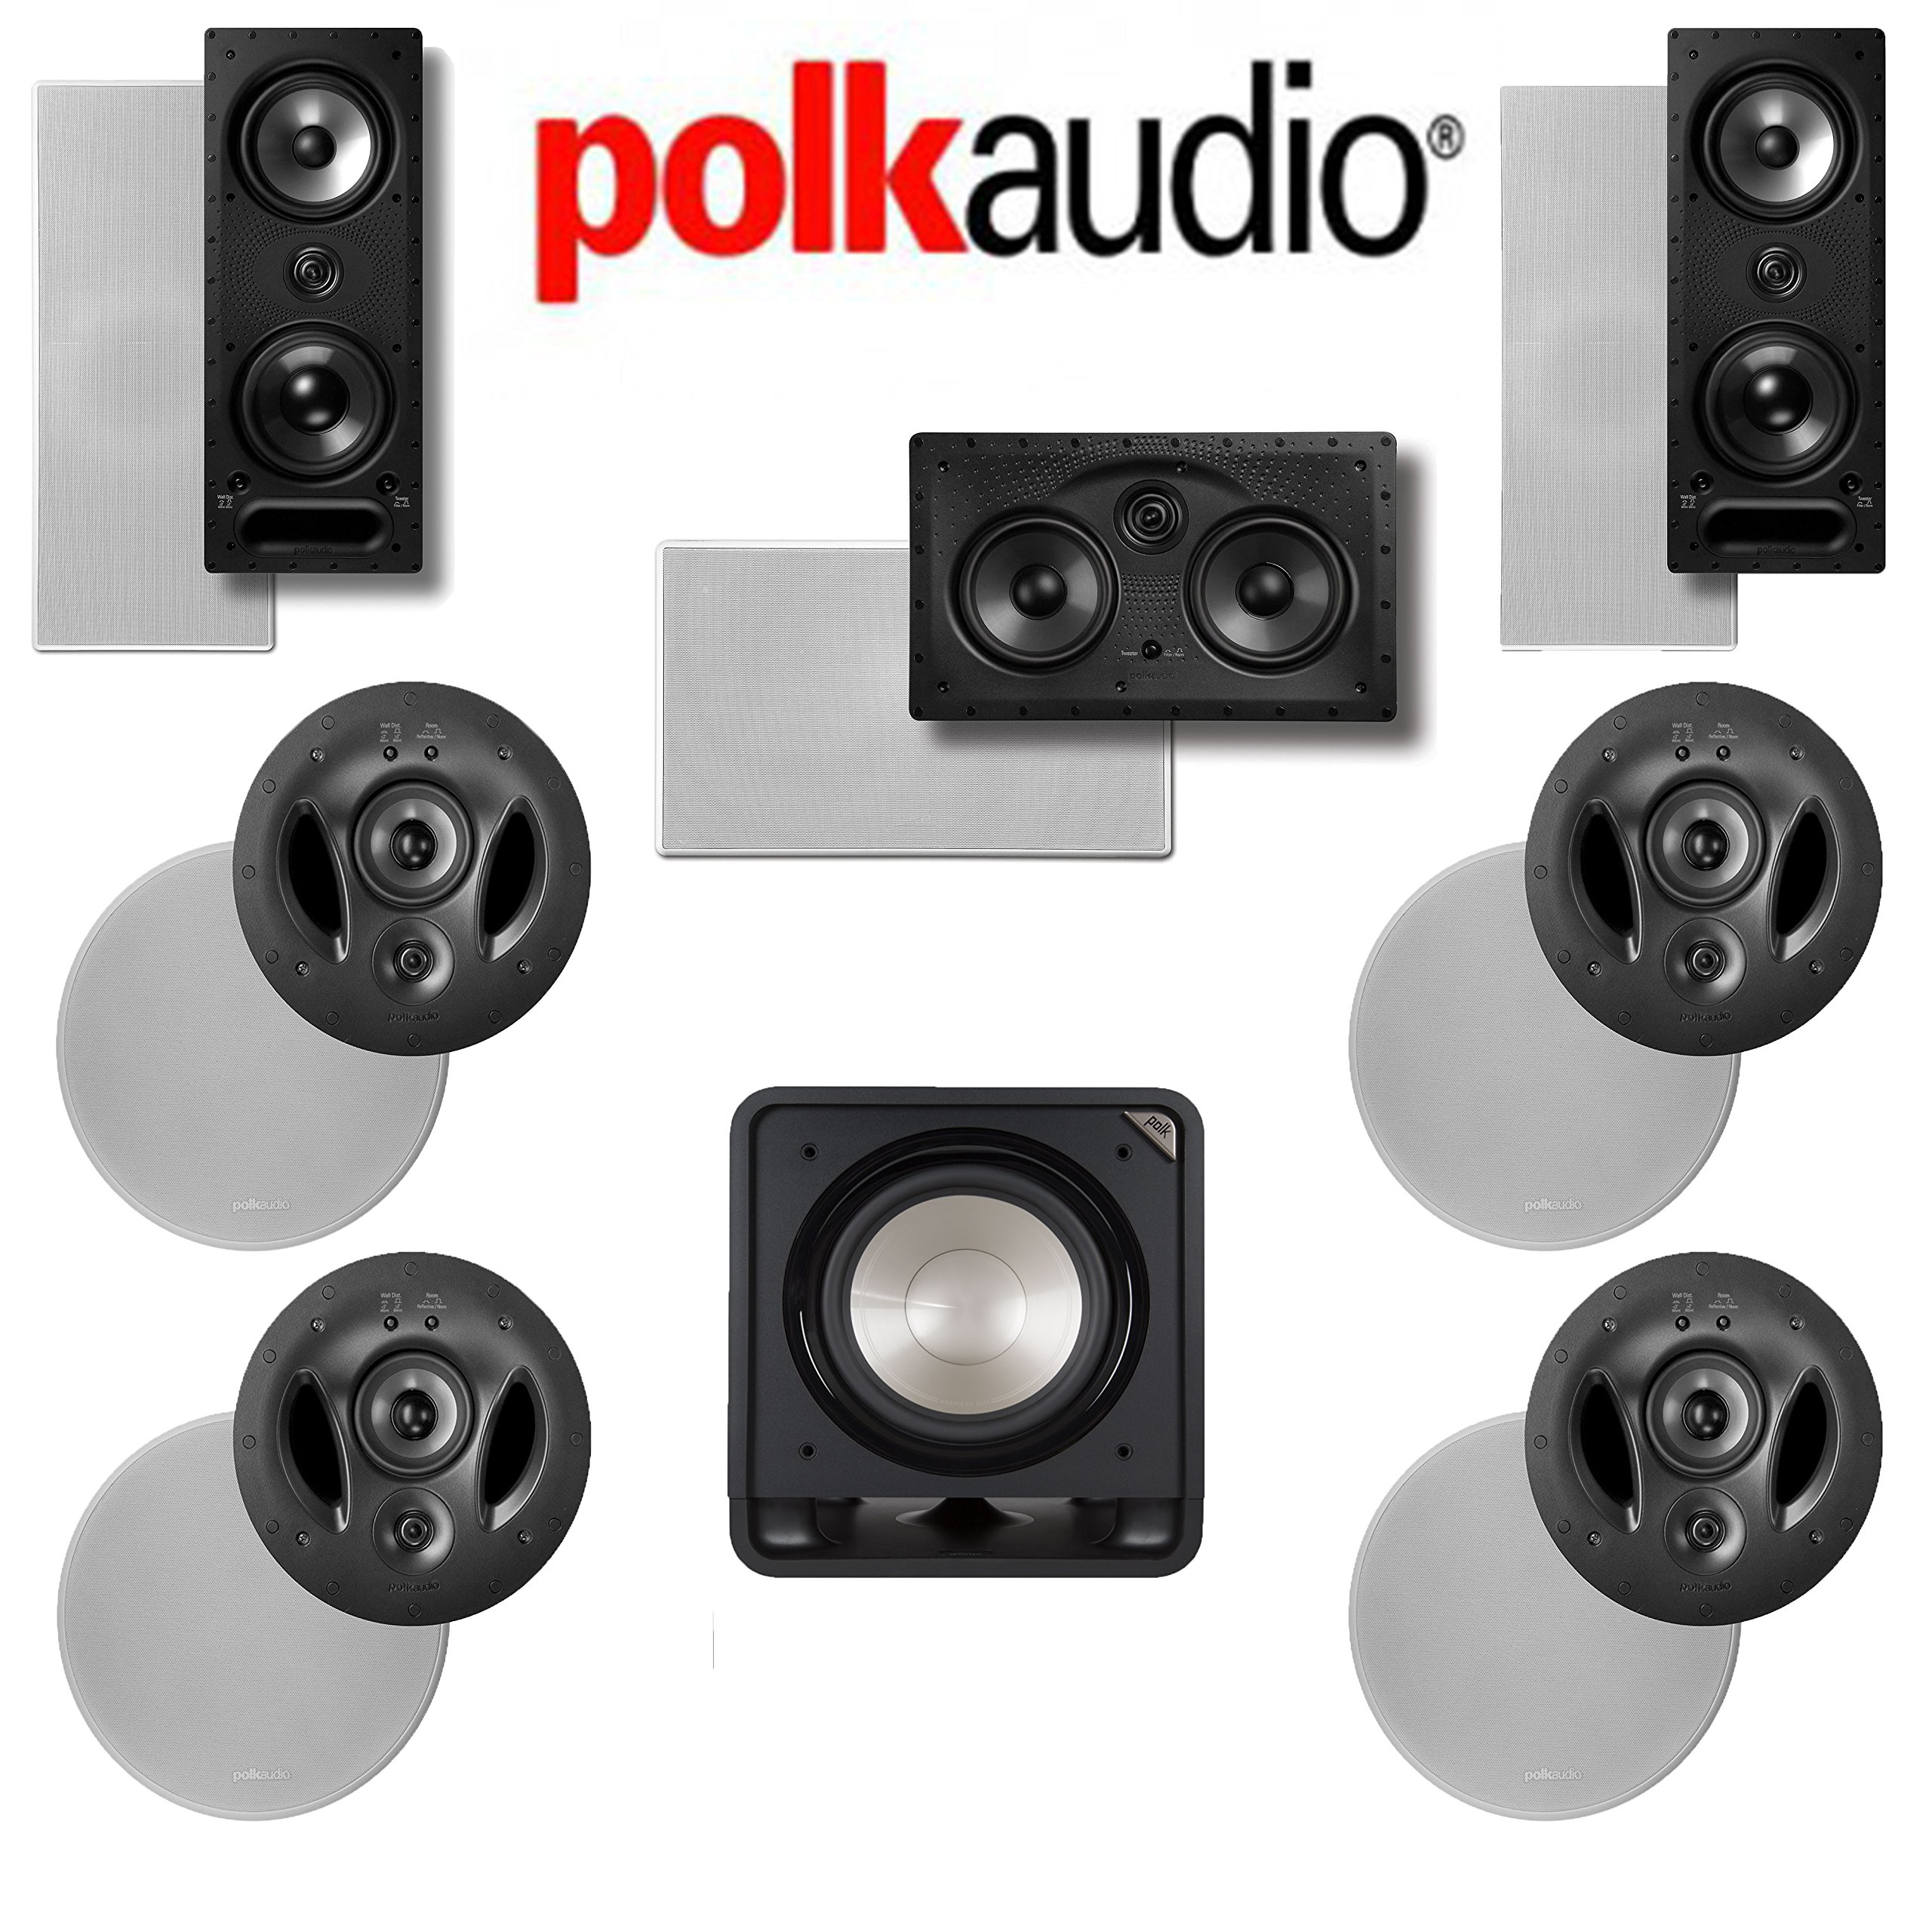 Polk Audio 900-LS 7.1 Vanishing Series In-Wall / In-Ceiling Home Theater System (900-LS + 265-LS + 255C-LS + HTS12) by Polk Audio